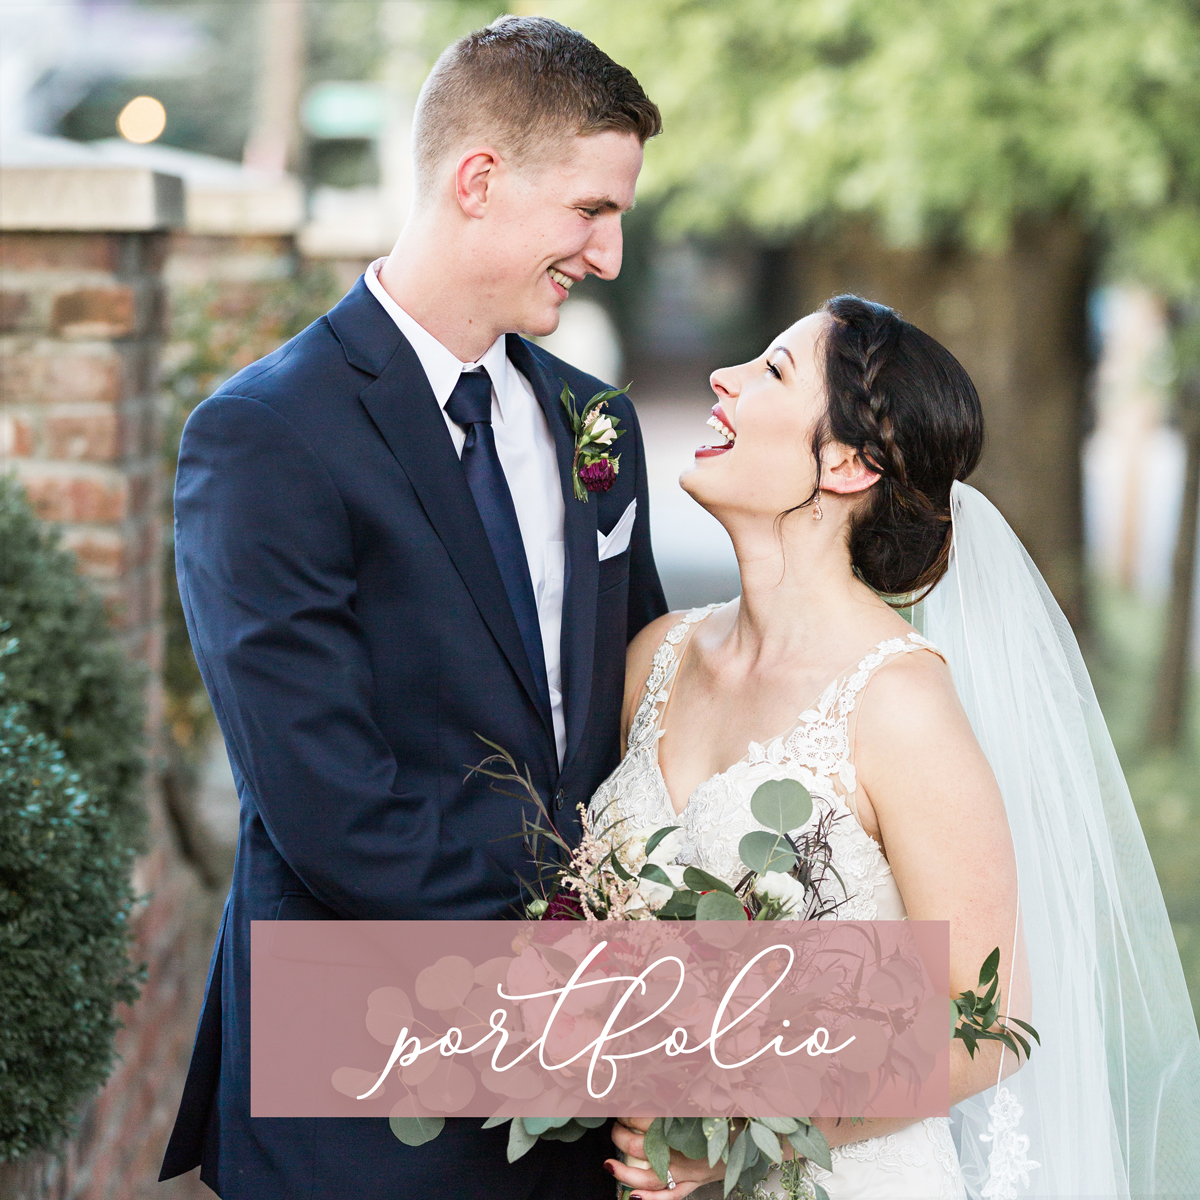 portfolio-louisville-wedding-photographer-the-belles-photography-the-pointe-wedding-bride-and-groom-laughing.jpg